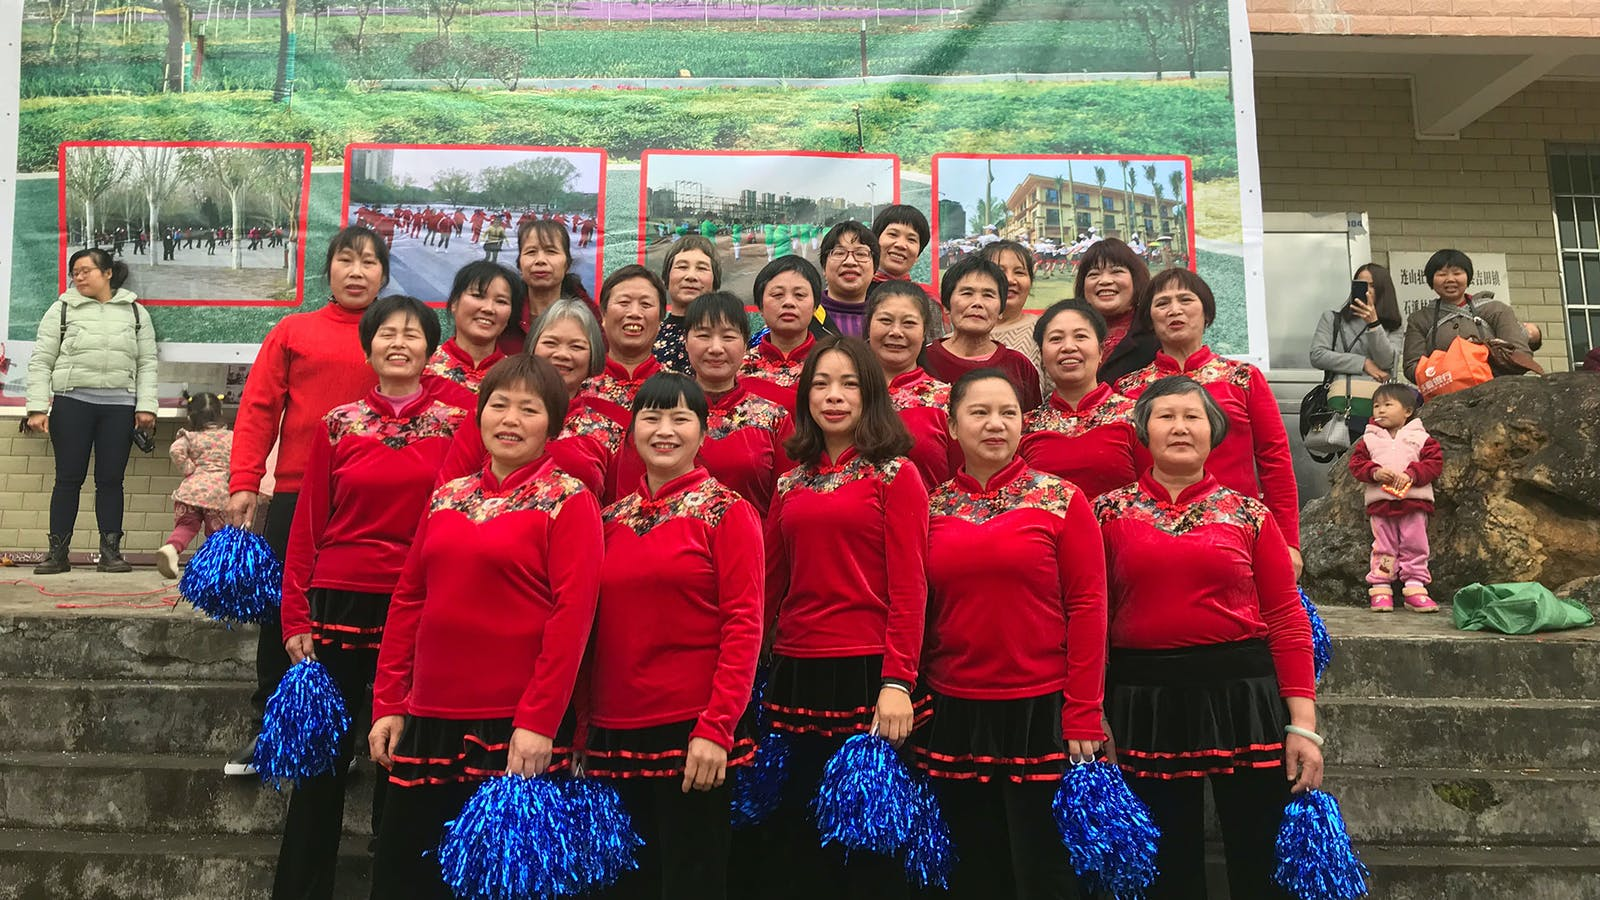 The Jitian village dance group, in matching outfits purchased on Pinduoduo, at the Lunar New Year gala.